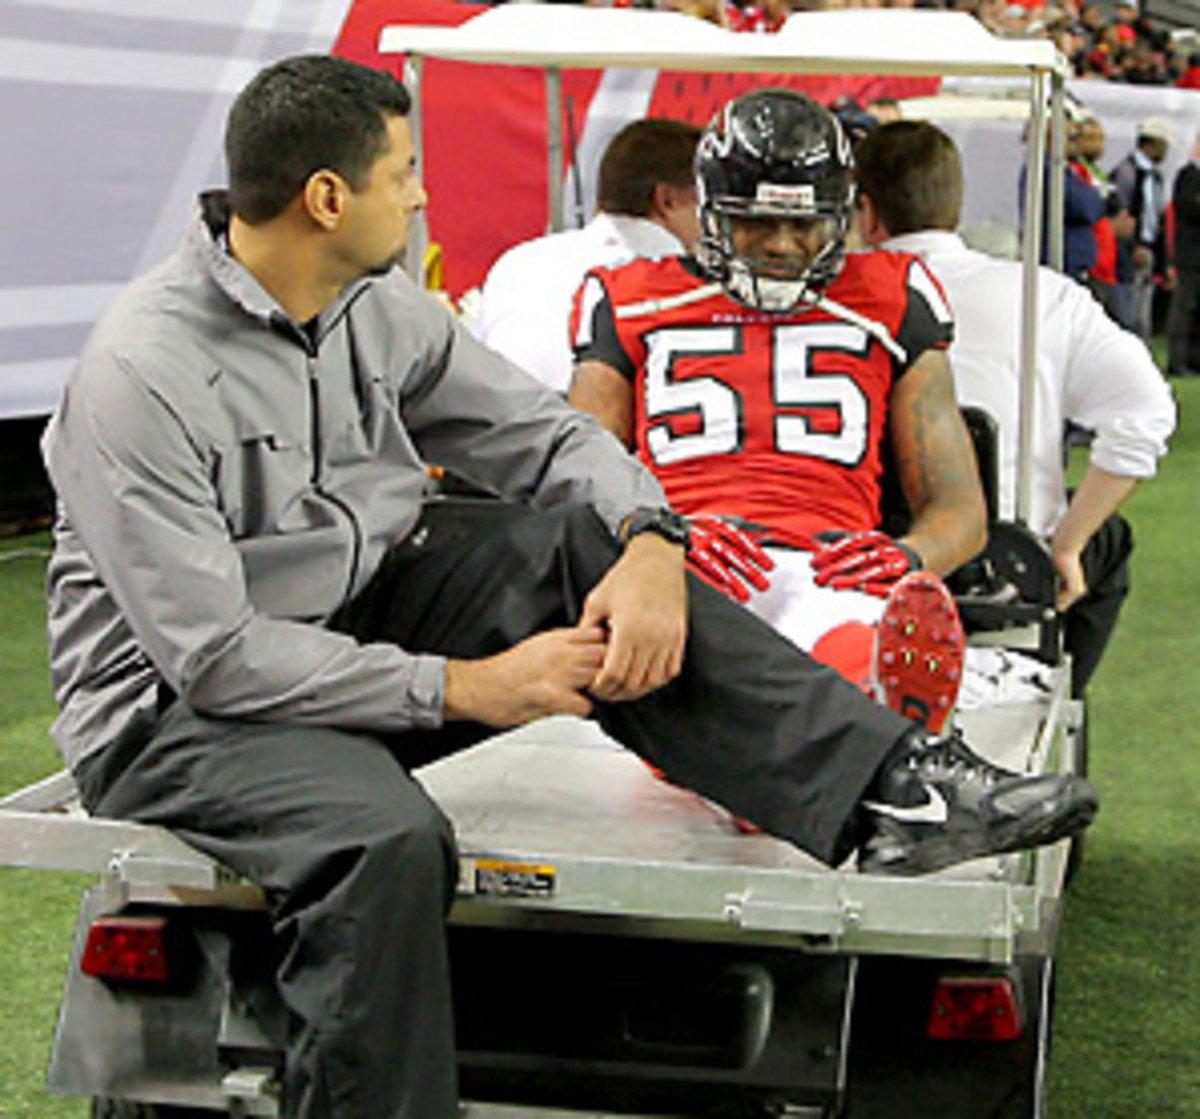 The Falcons defense will have a hard time in the divisional round if it has to play without John Abraham. (Todd Kirkland/Icon SMI)